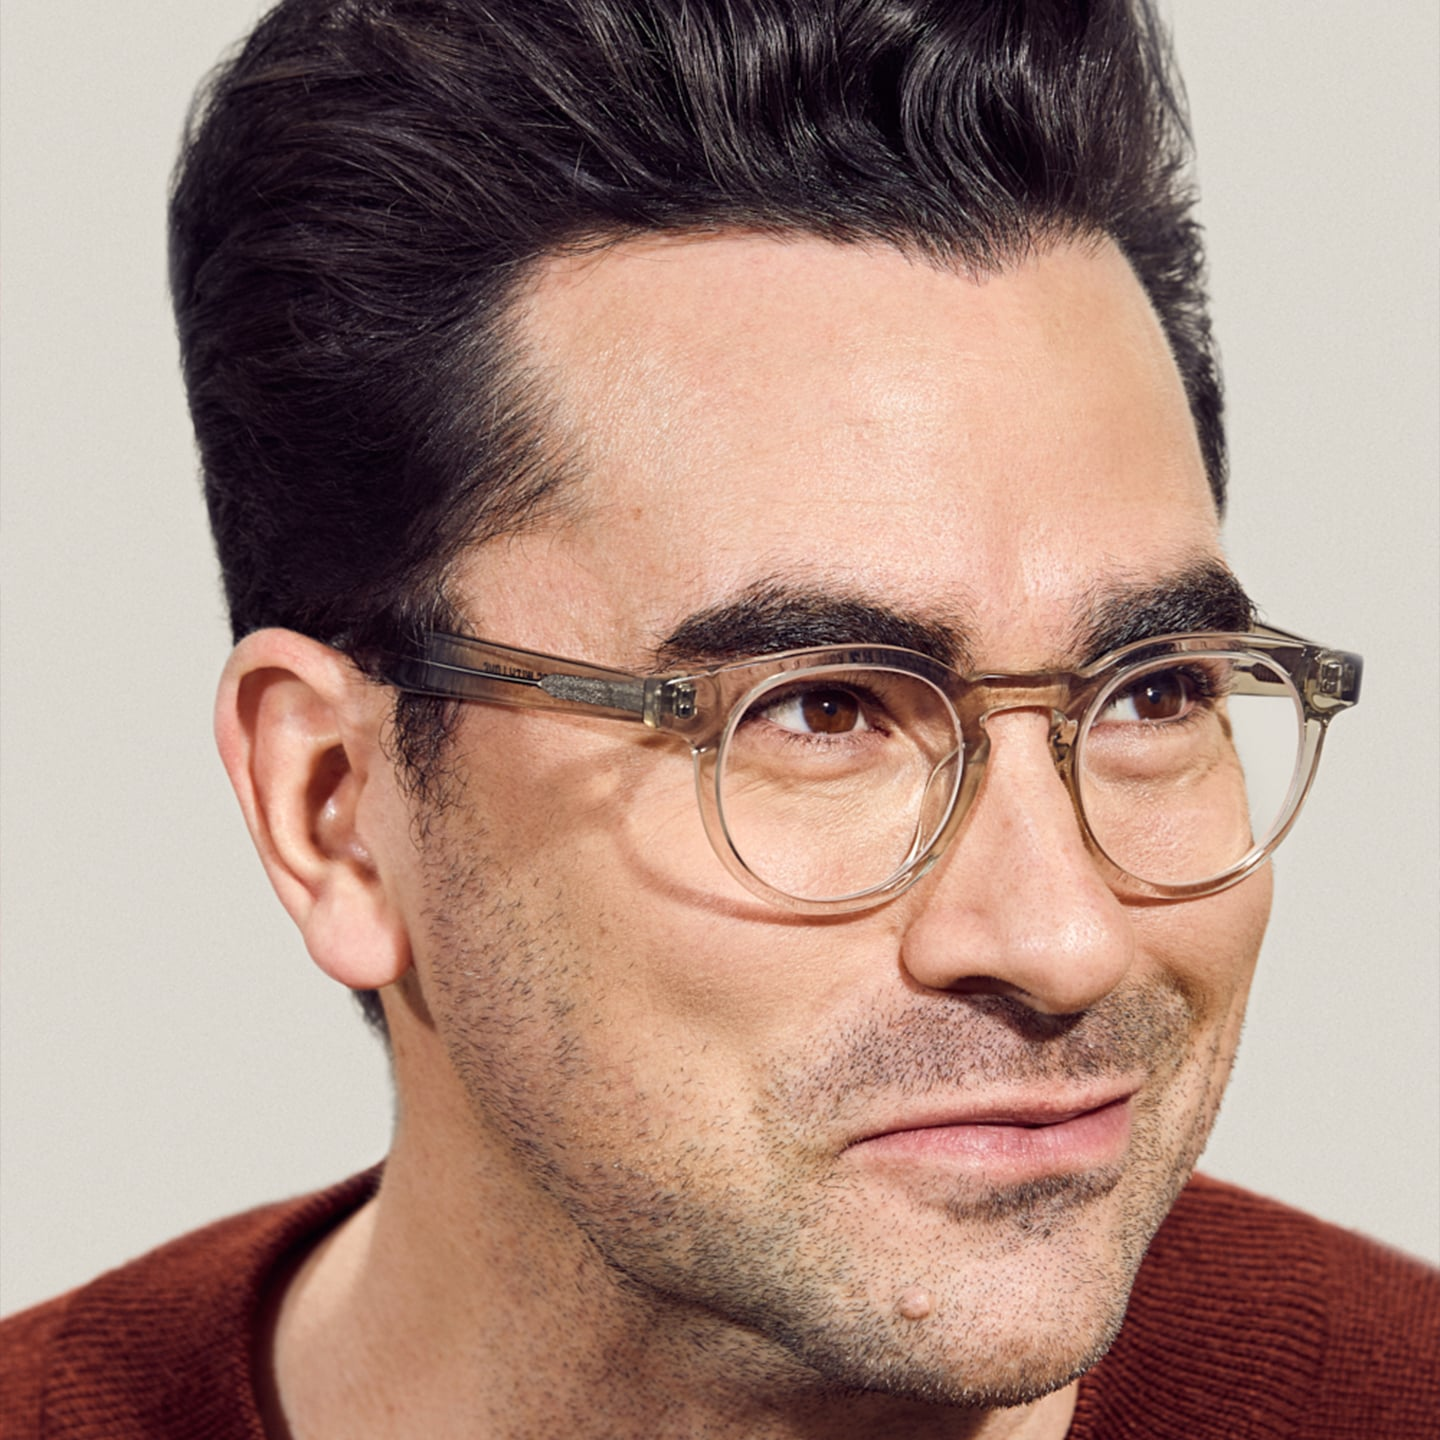 Dan Levy relaunching his eyewear line with an incredible Tie-in